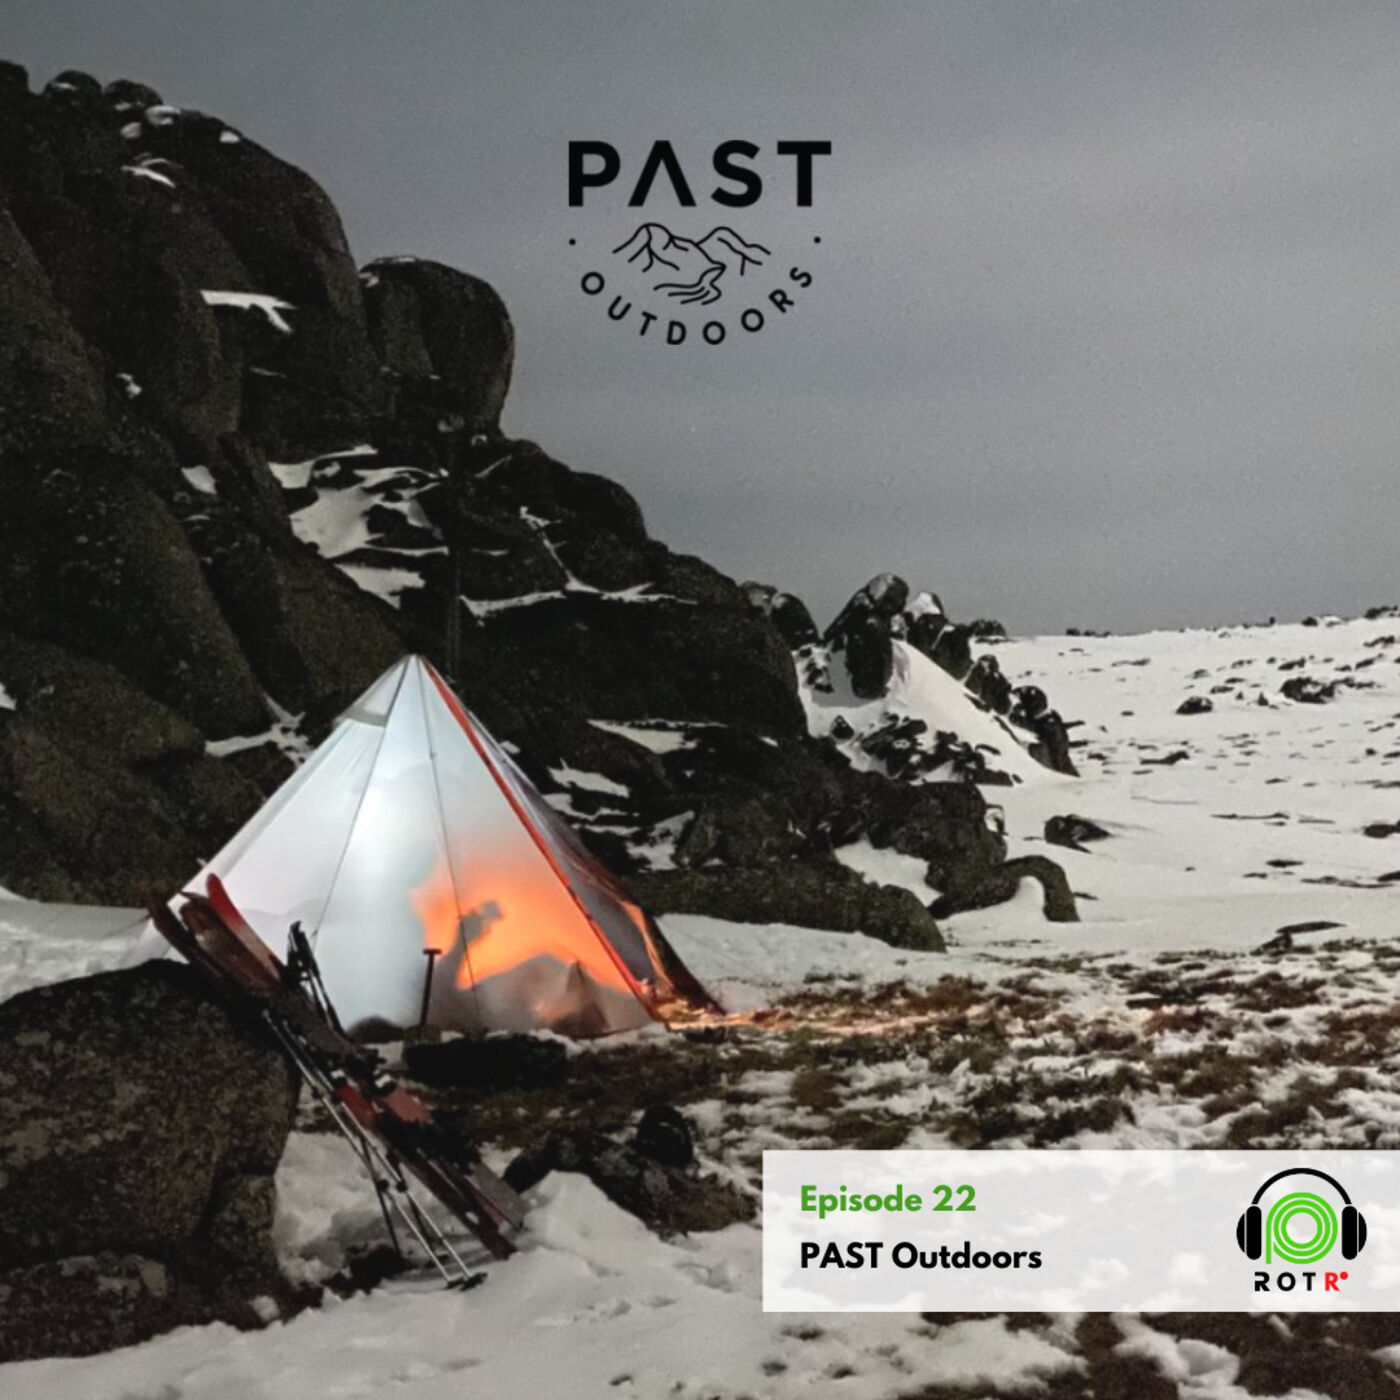 PAST Outdoors